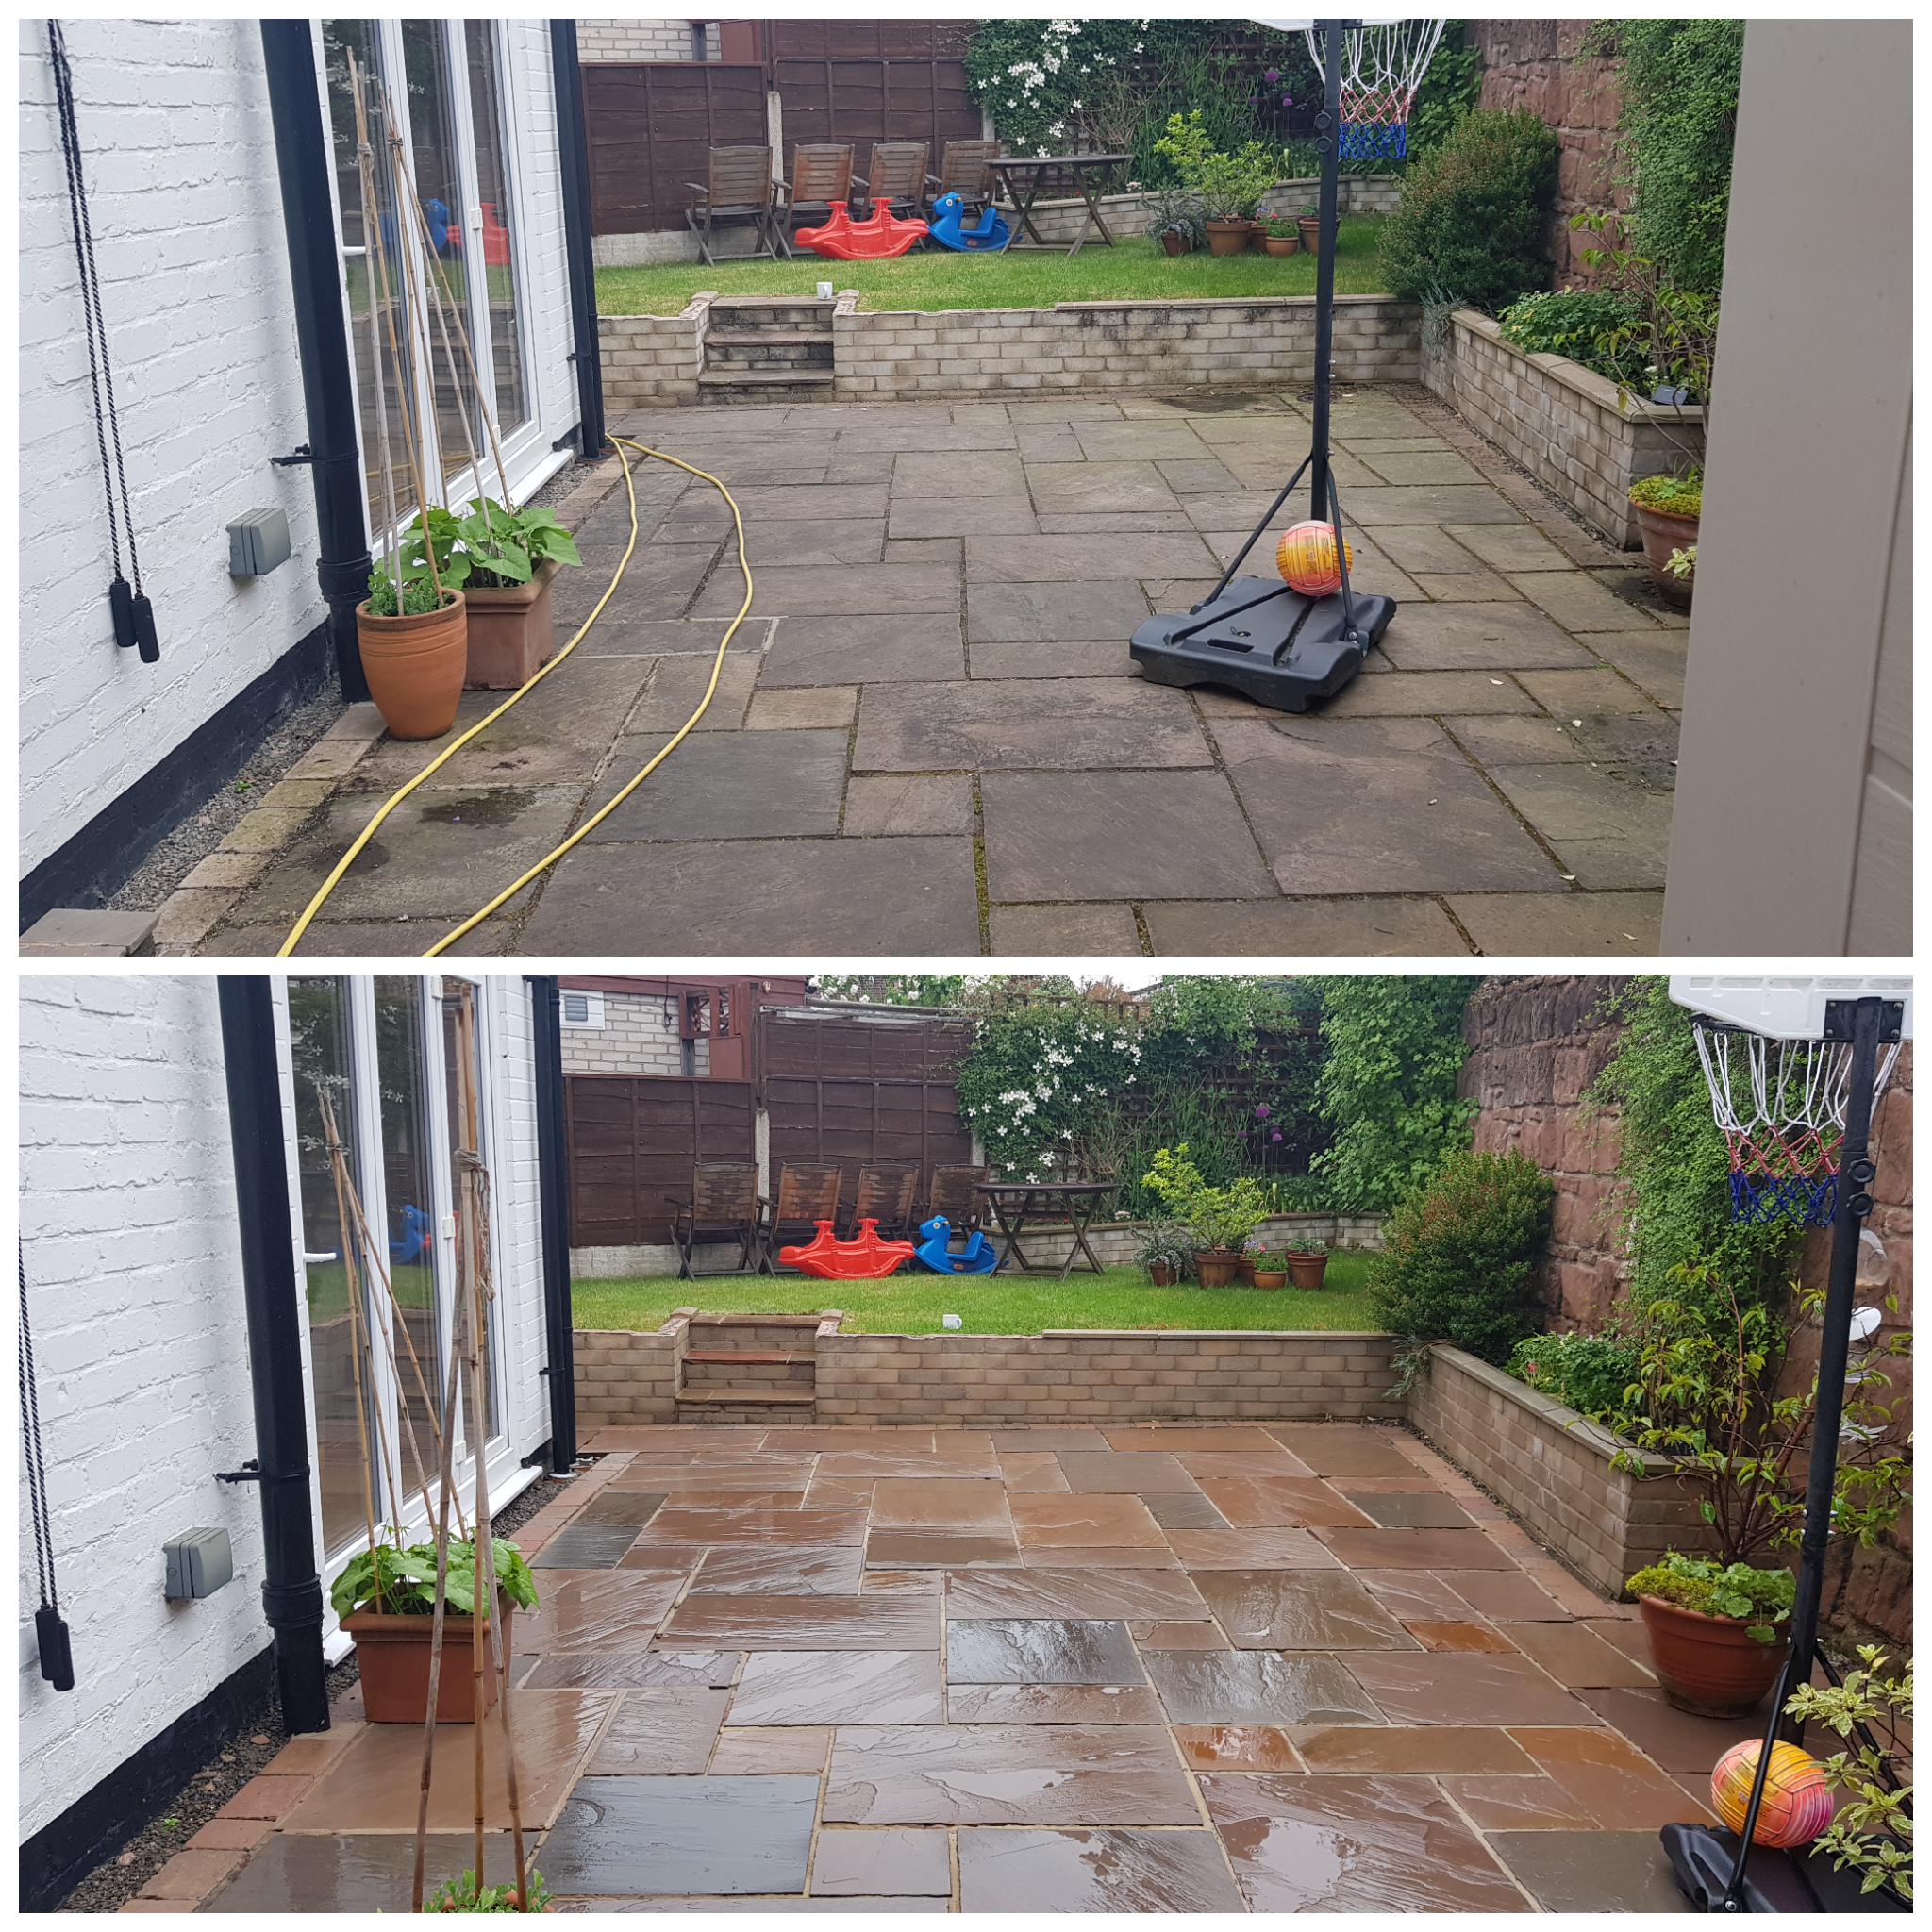 PicsArt_05-25-08.05.02 Indian Sandstone Driveway, Patio & Path Cleaning - Little Neston, Cheshire